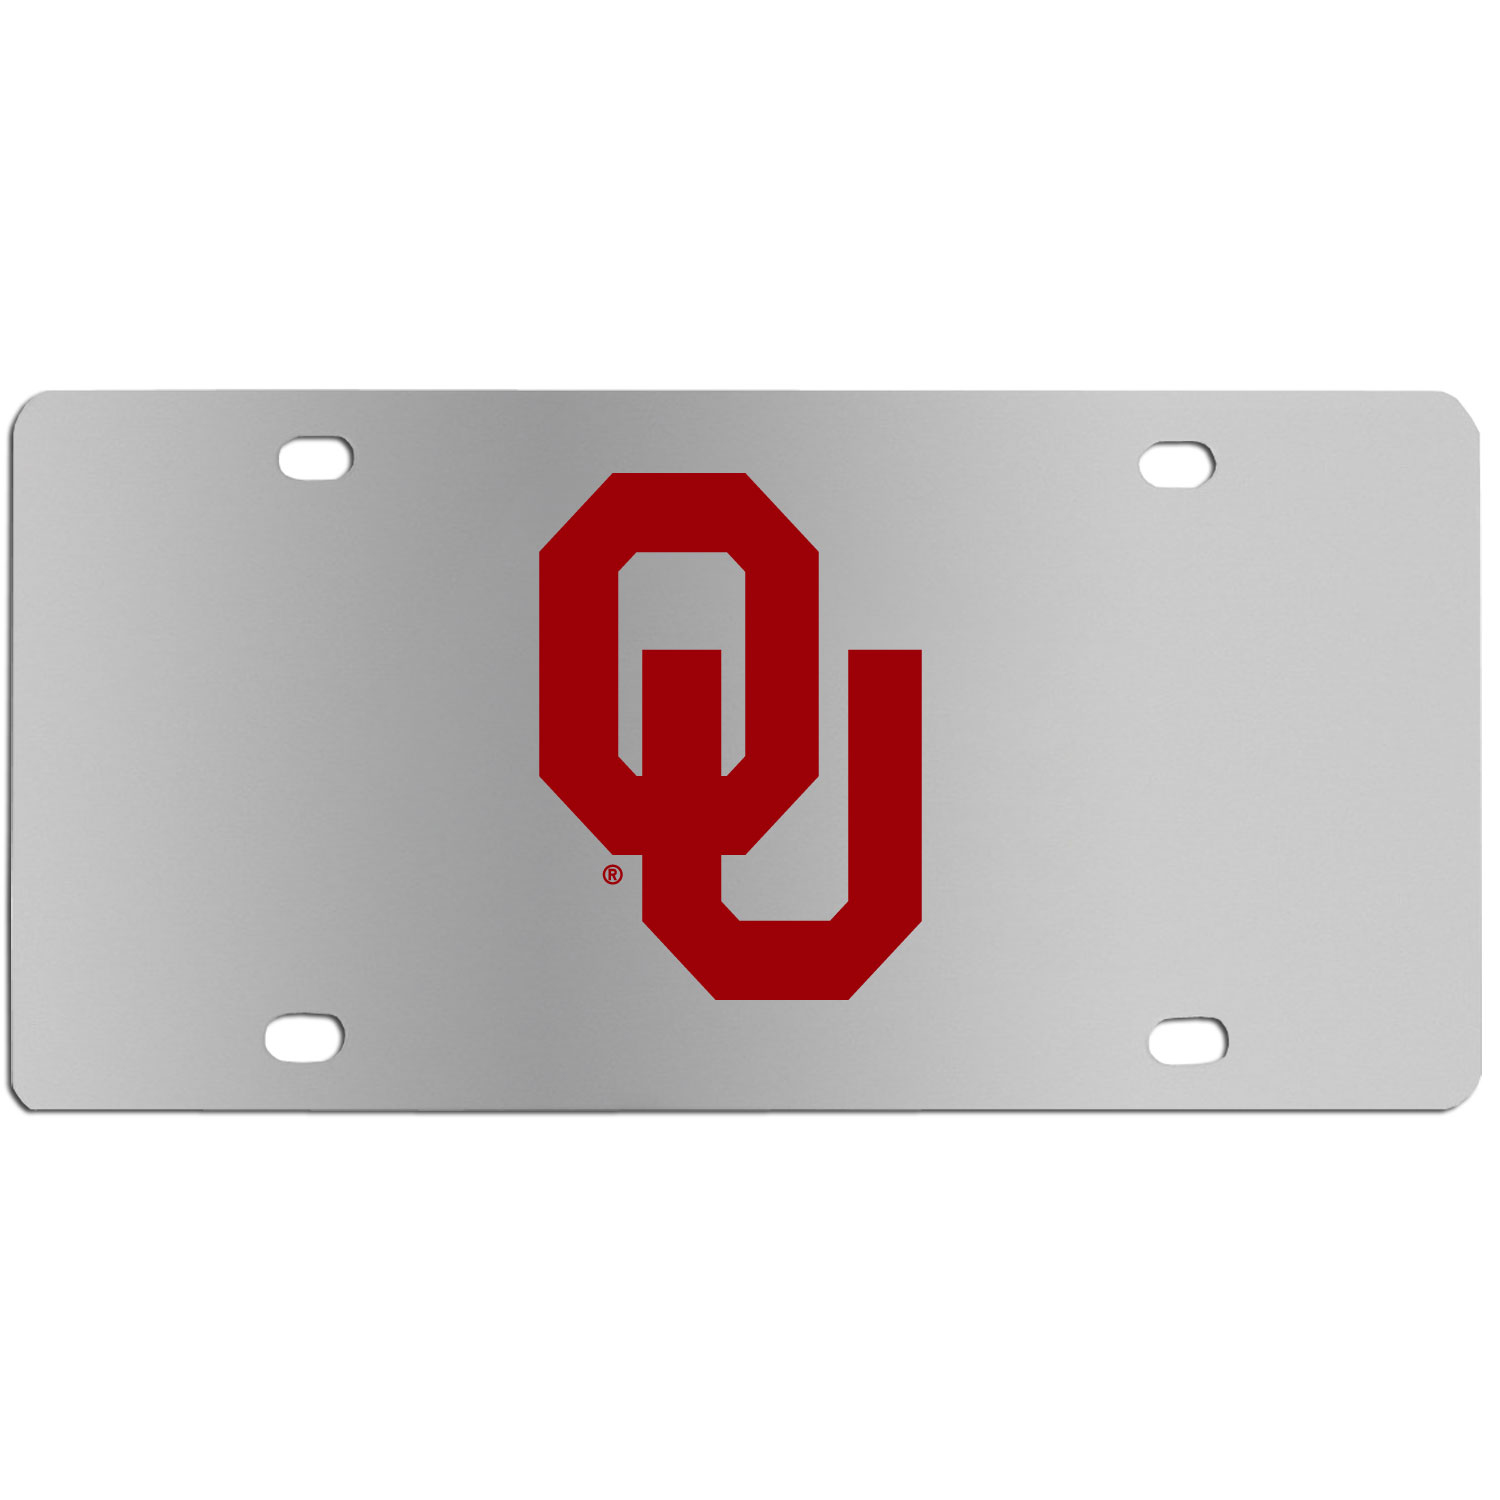 Oklahoma Sooners Steel License Plate Wall Plaque - This high-quality stainless steel license plate features a detailed team logo on a the polished surface. The attractive plate is perfect for wall mounting in your home or office to become the perfect die-hard Oklahoma Sooners fan decor.